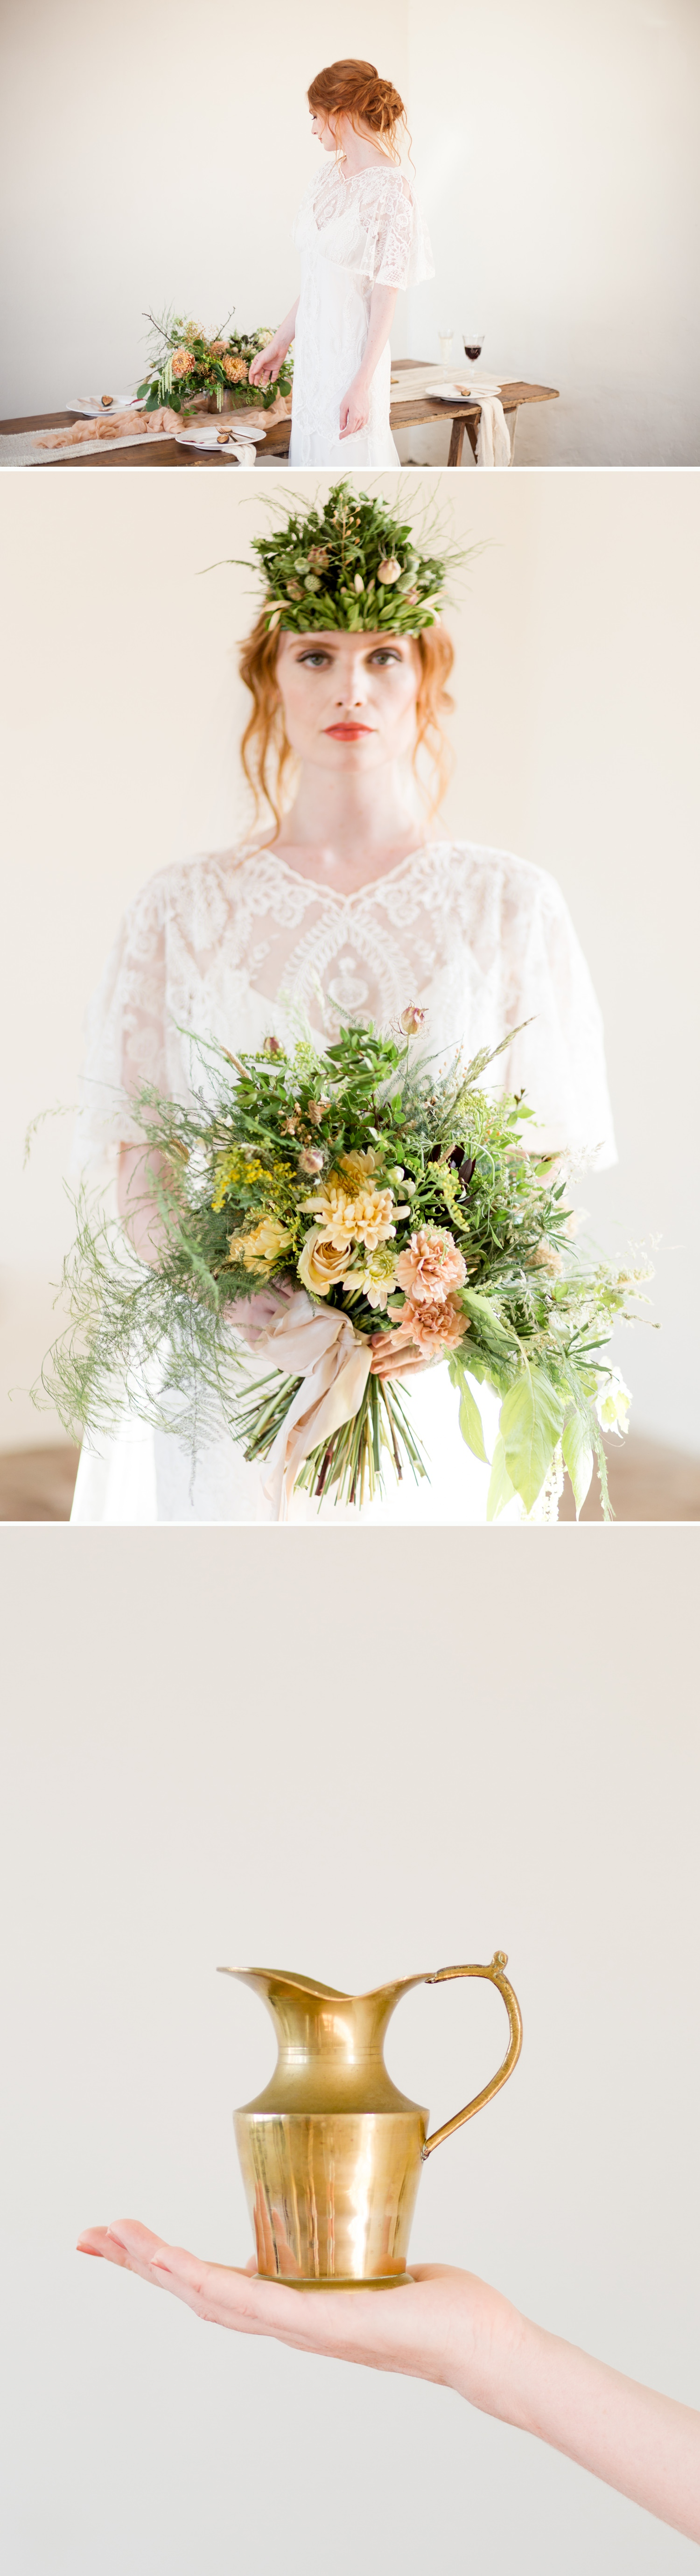 West Sussex Wedding Photographer - wedding styling inspired by Titania, Queen of the Fairies